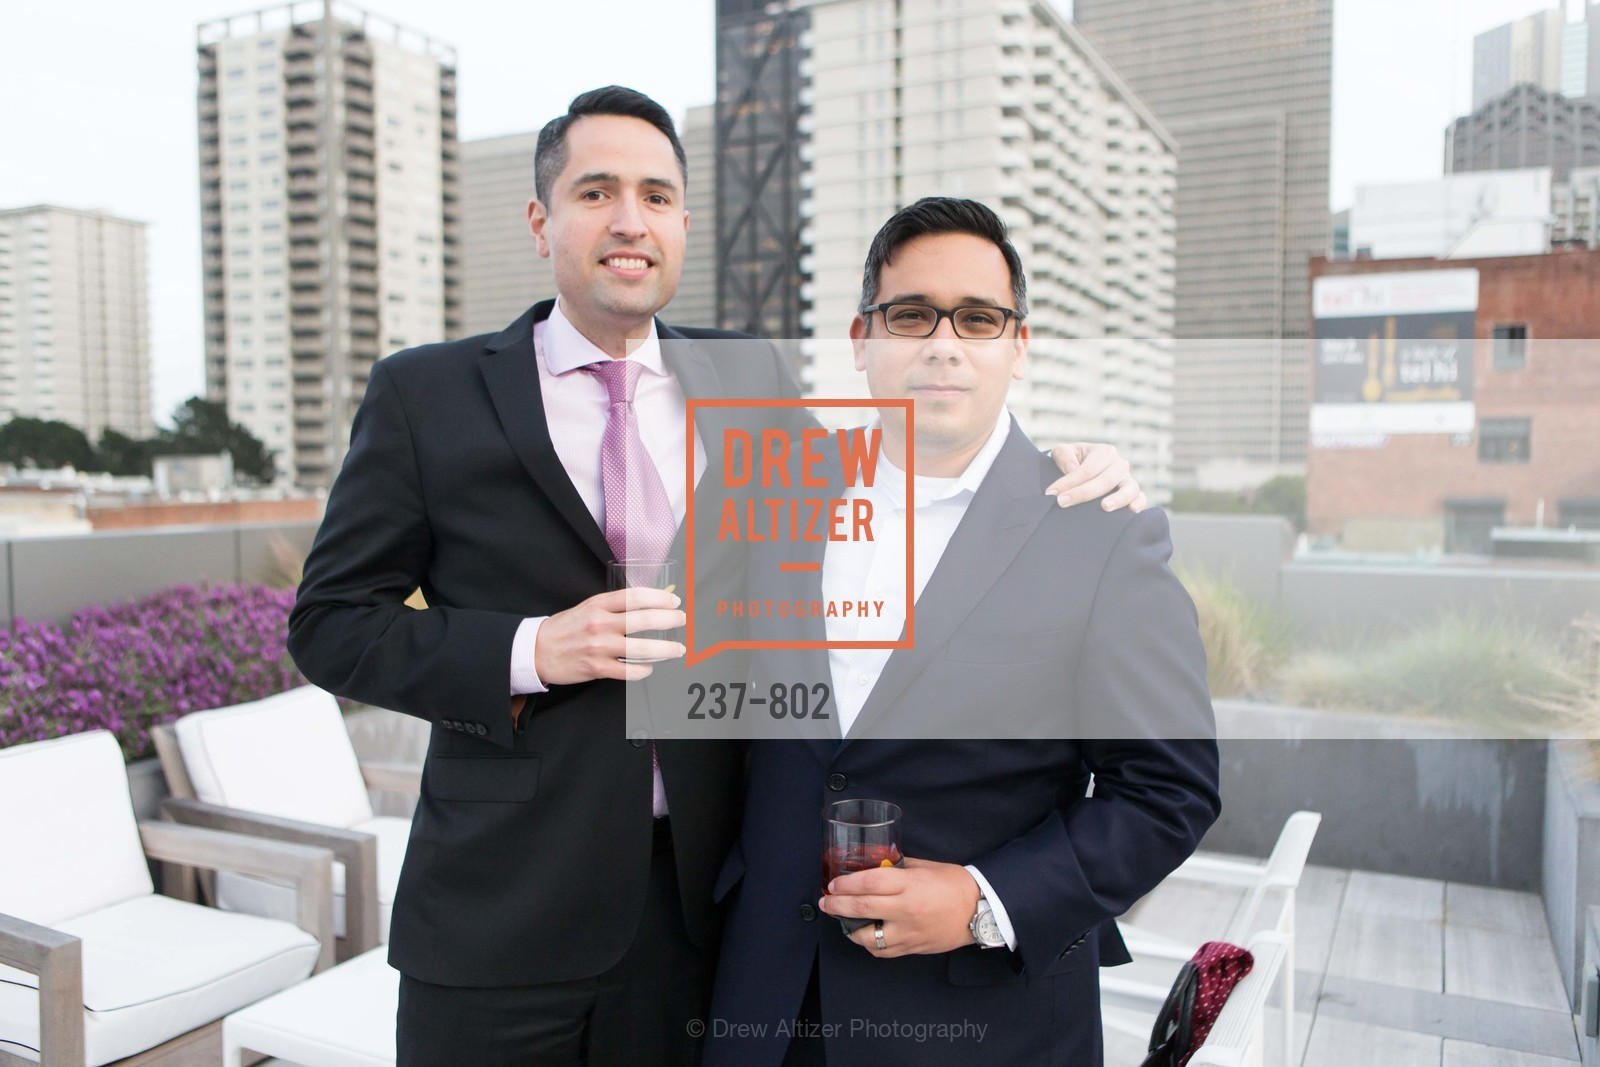 Aaron Barrera, Gonzalo Martinez, MR PORTER Celebrate The San Francisco Issue of The Journal, US, April 24th, 2015,Drew Altizer, Drew Altizer Photography, full-service agency, private events, San Francisco photographer, photographer california